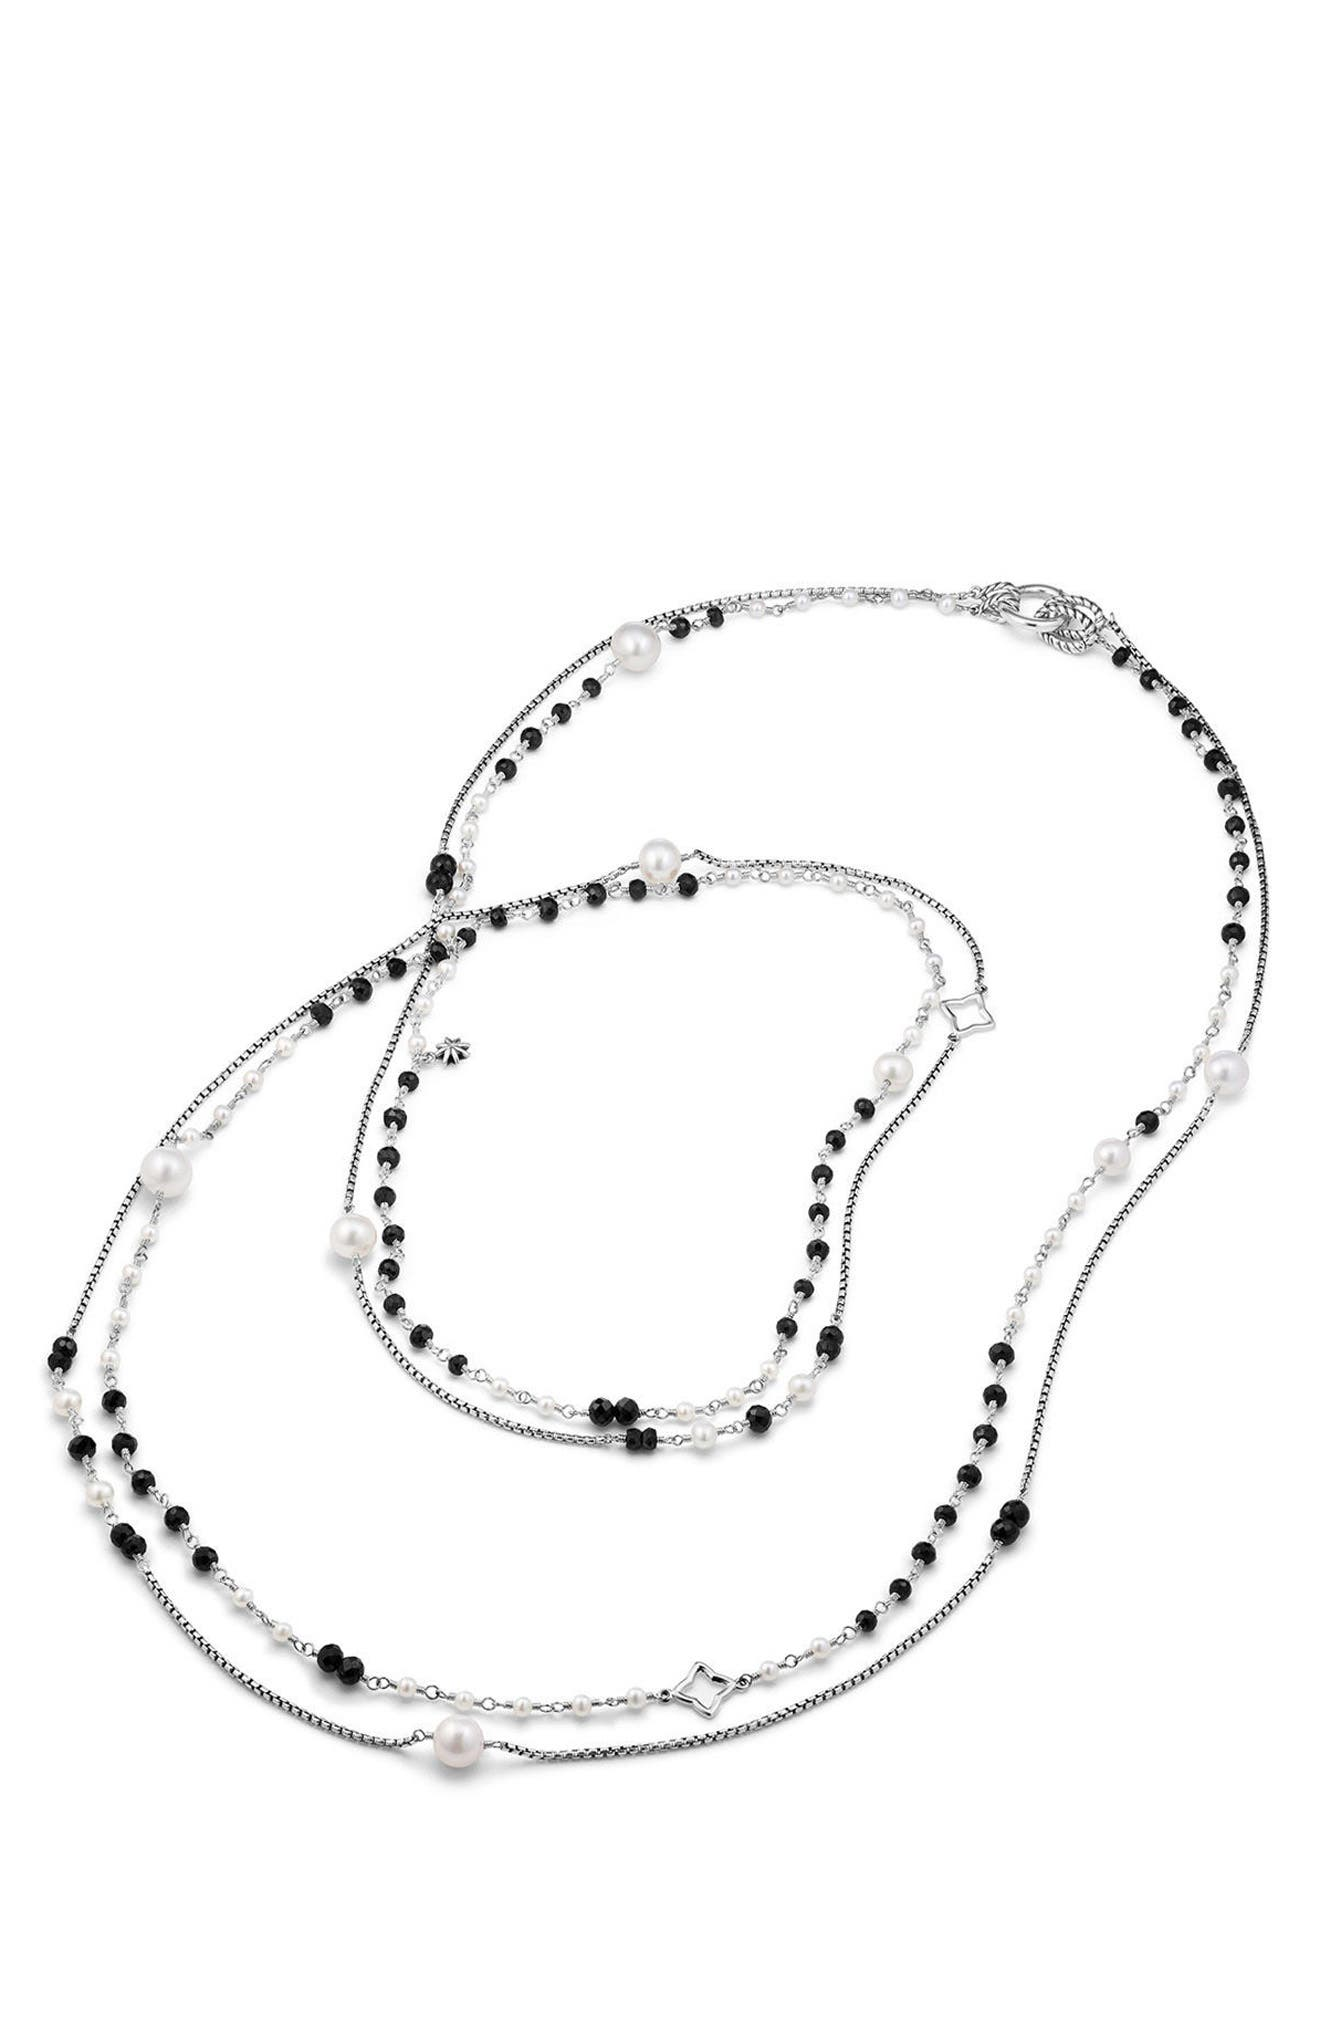 Solari Two Row Pearl Chain Necklace,                             Alternate thumbnail 2, color,                             PEARL/ BLACK SPINEL